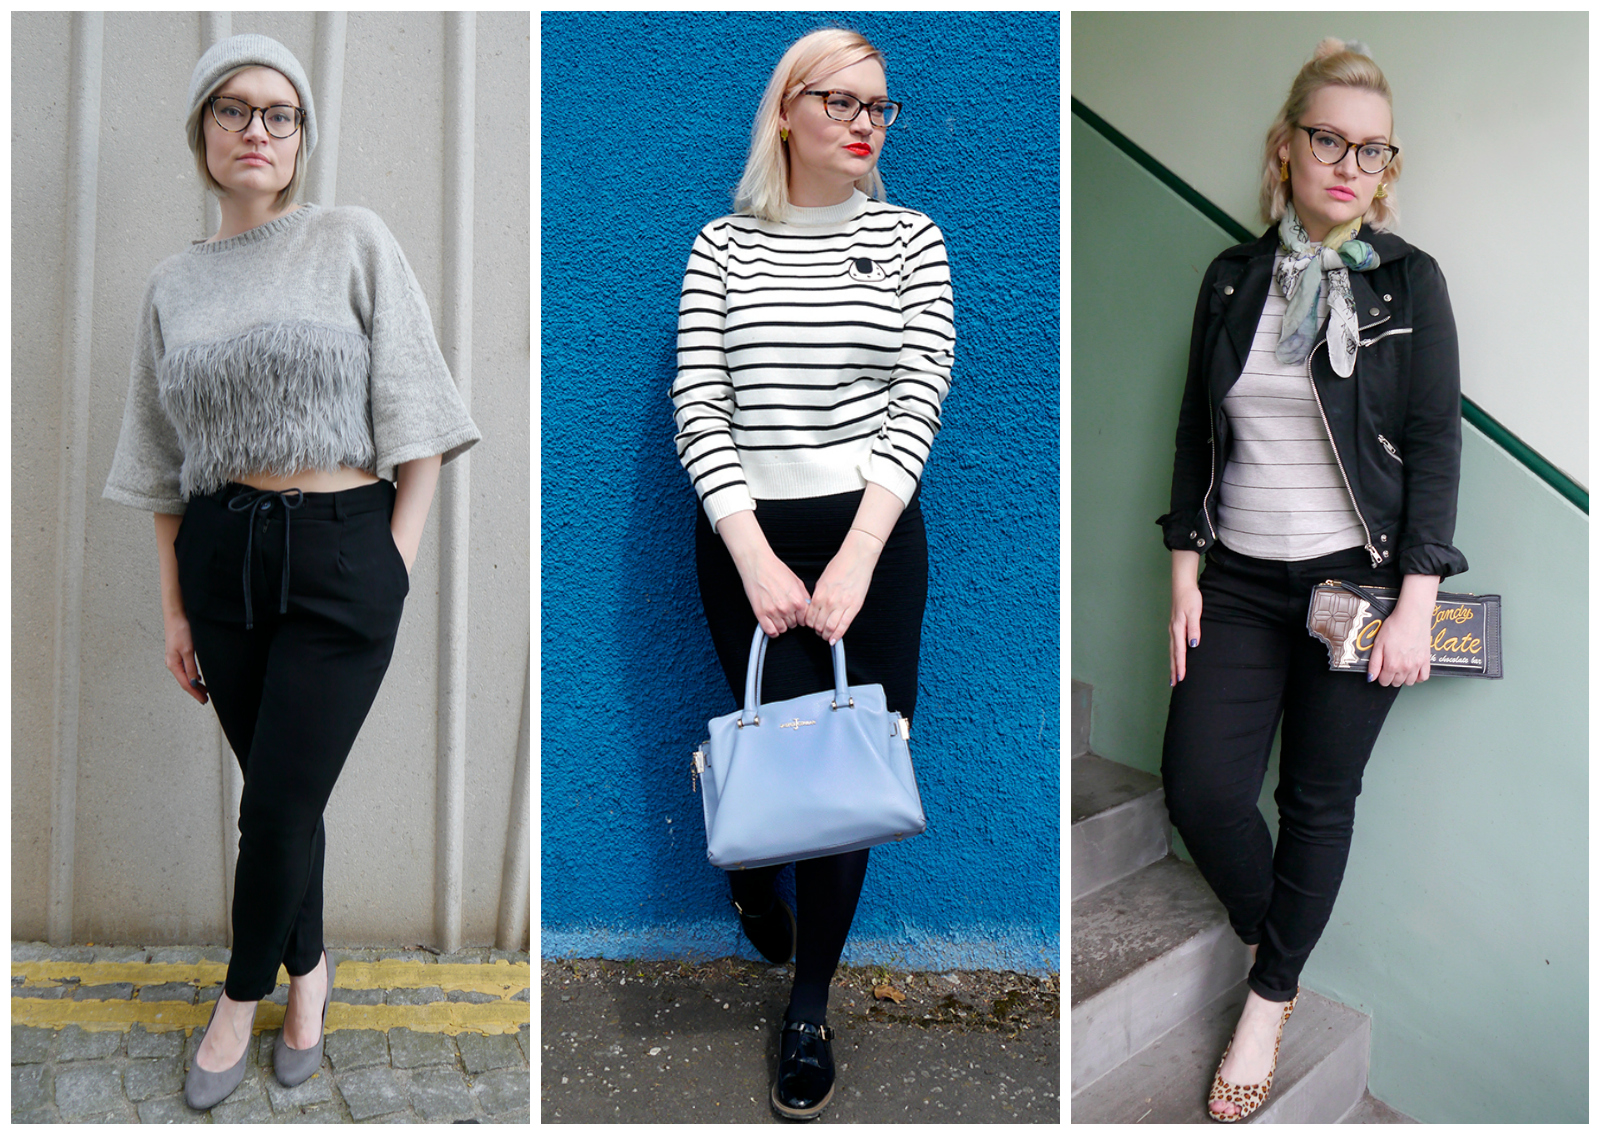 outfit round up, 2016 blogger outfit, blogger style, wardrobe conversations, Scottish blogger, UK style blogger, Edinburgh blogger, Yellow Bubble, Whitepepper, Sleekit Studio, Sugar & Vice